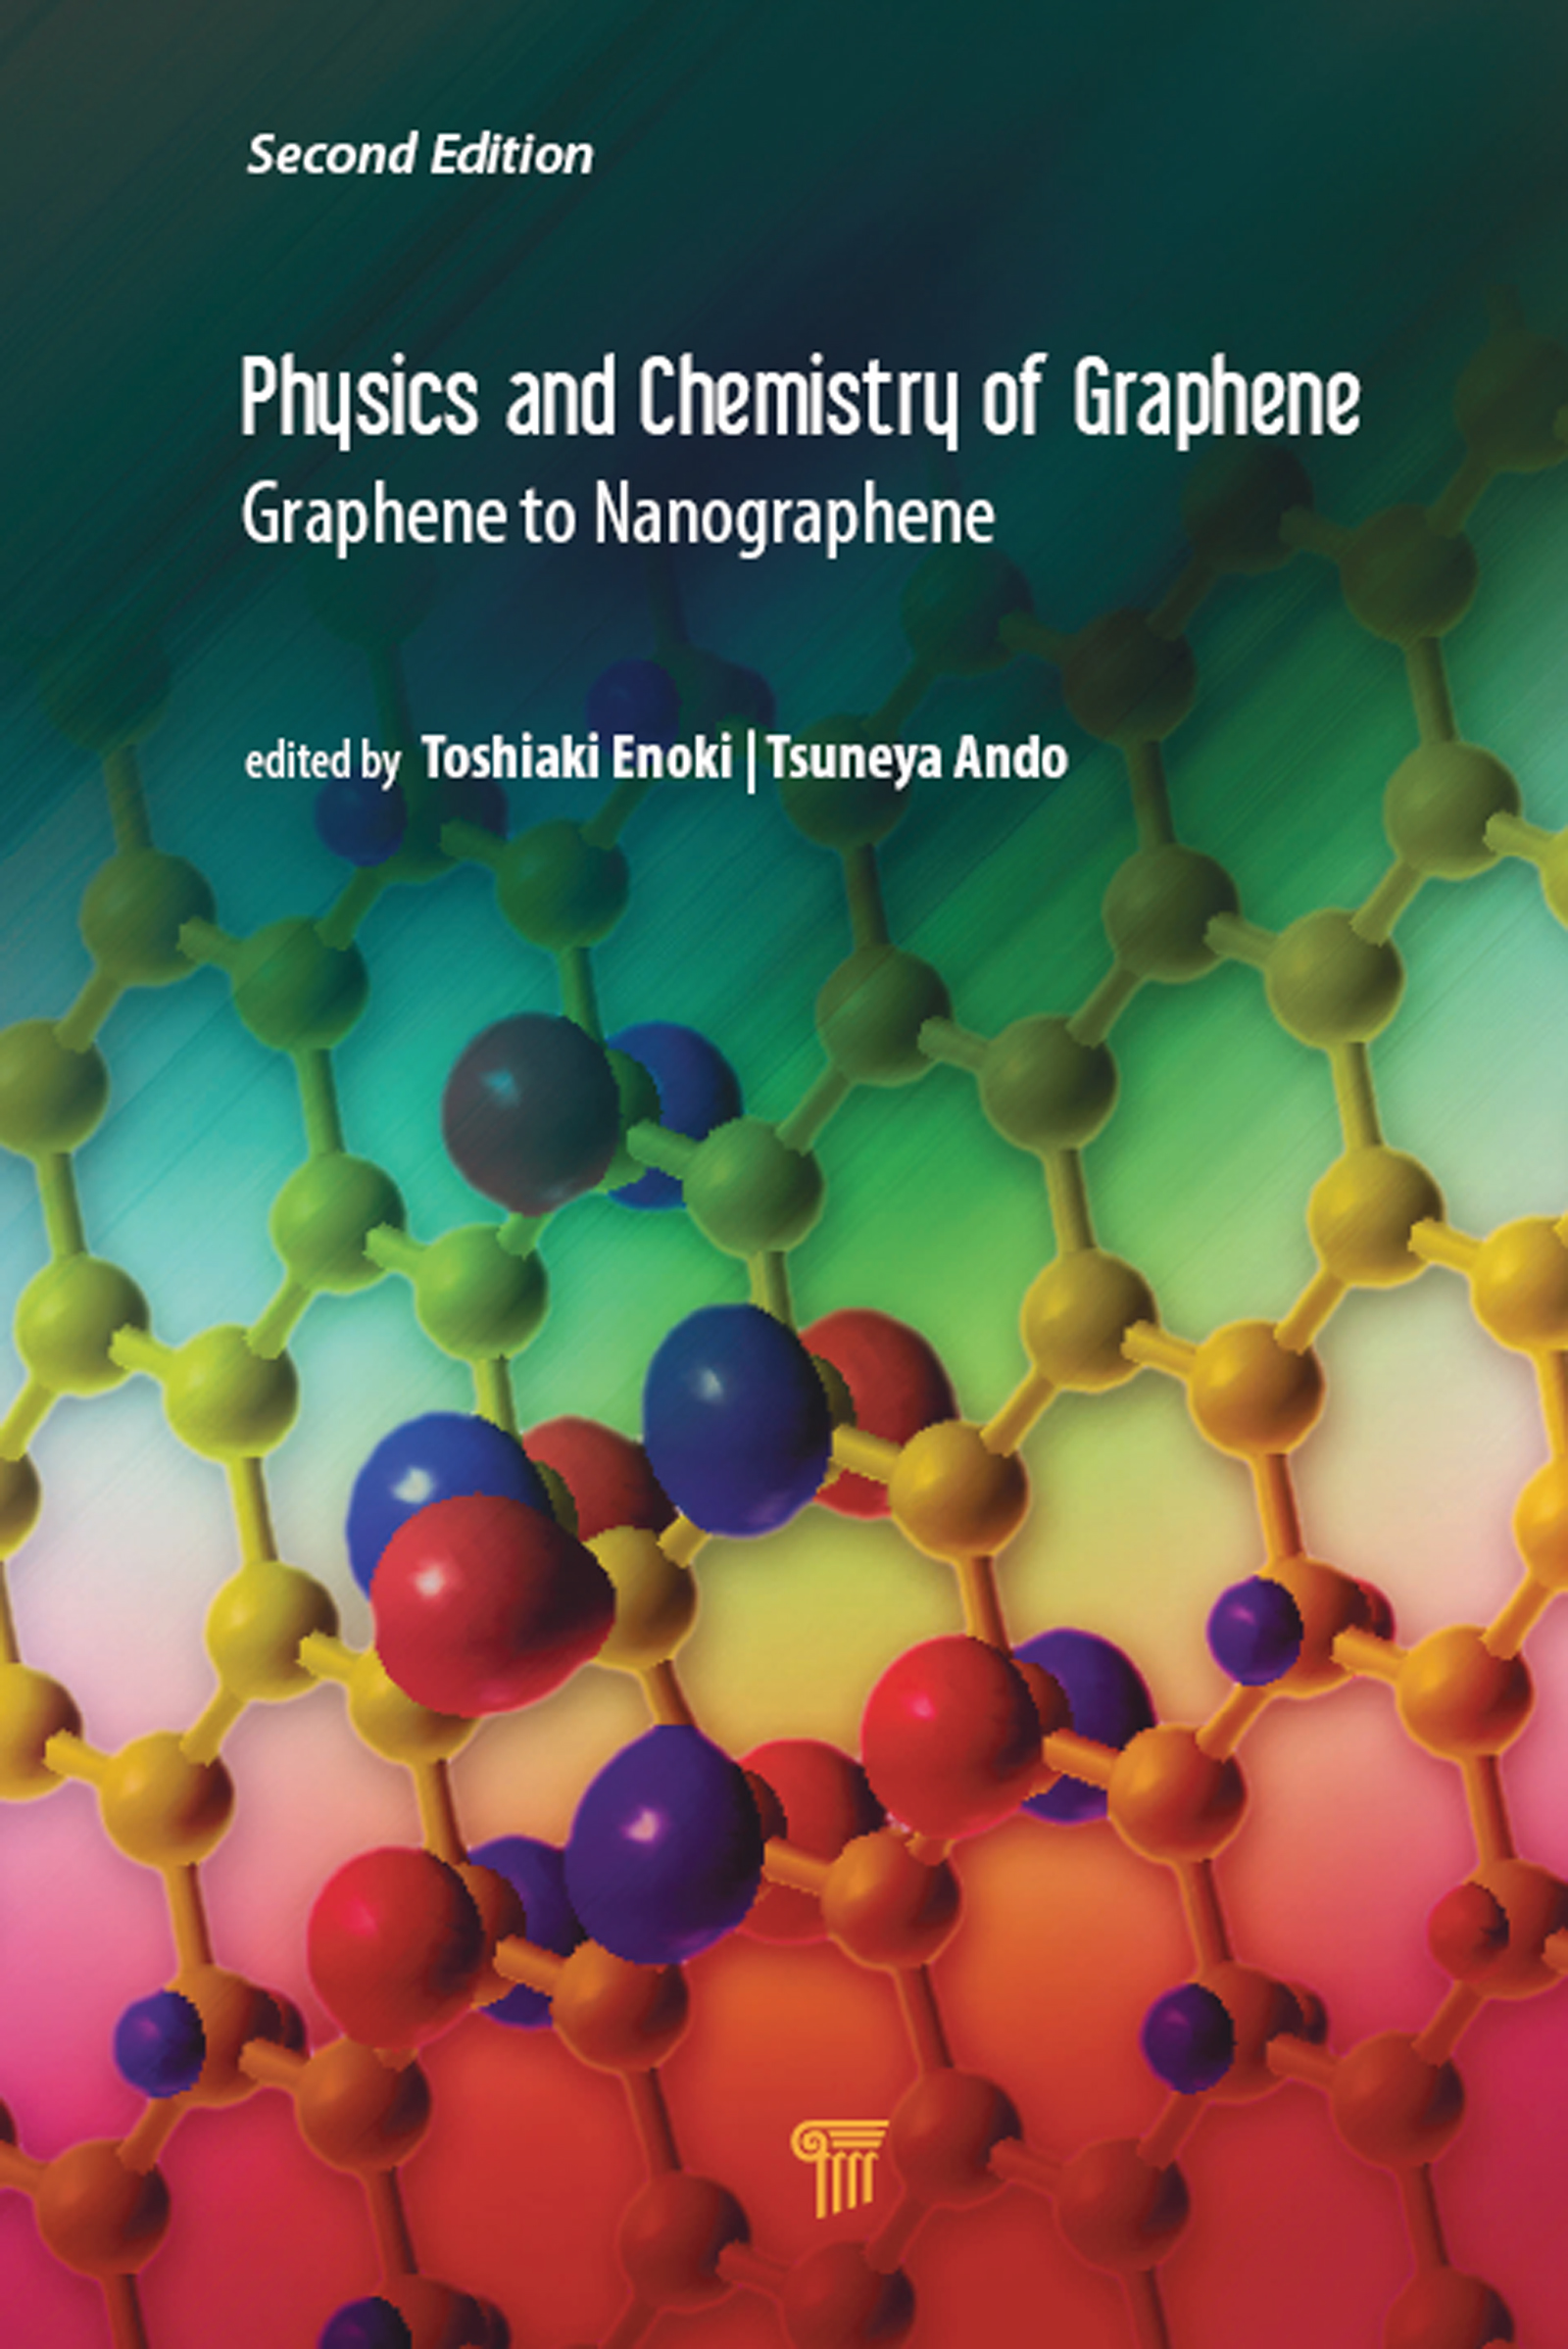 Physics and Chemistry of Graphene (Second Edition): Graphene to Nanographene book cover